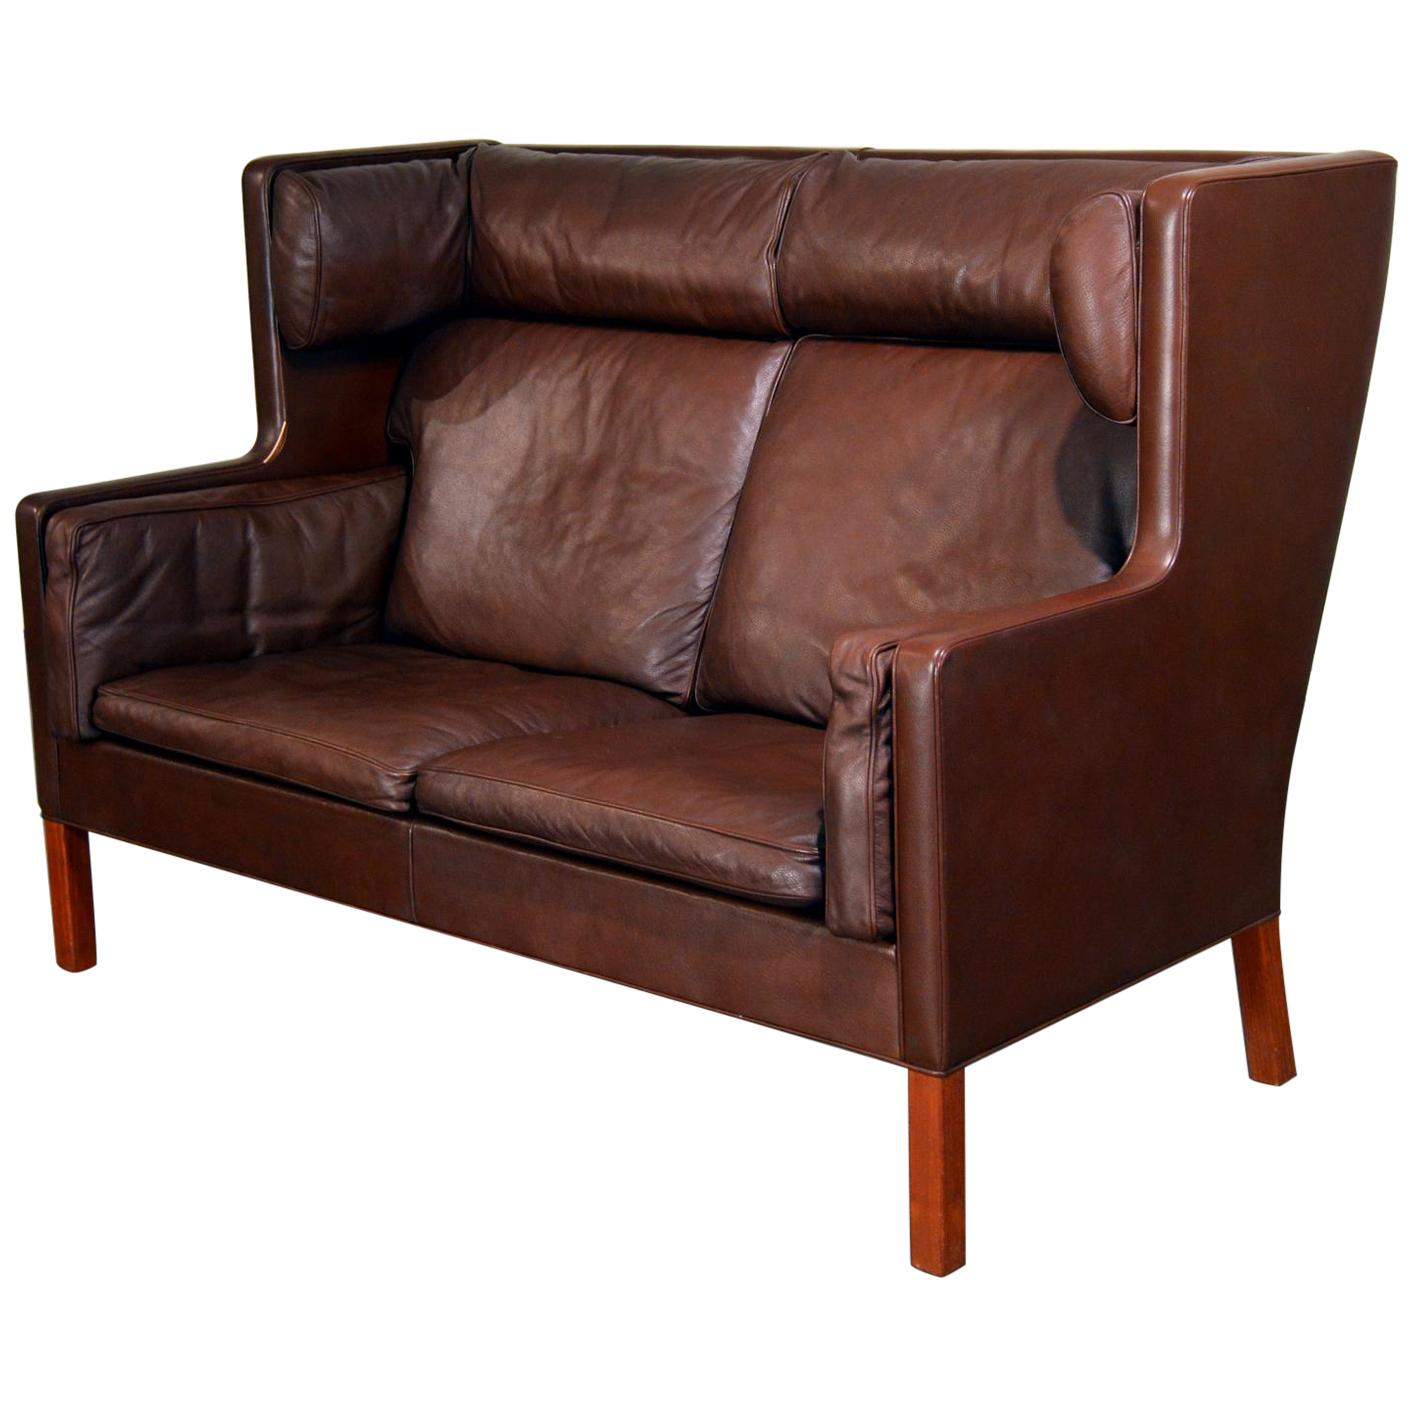 Børge Mogensen Coupe Sofa no. 2192 by Frederica